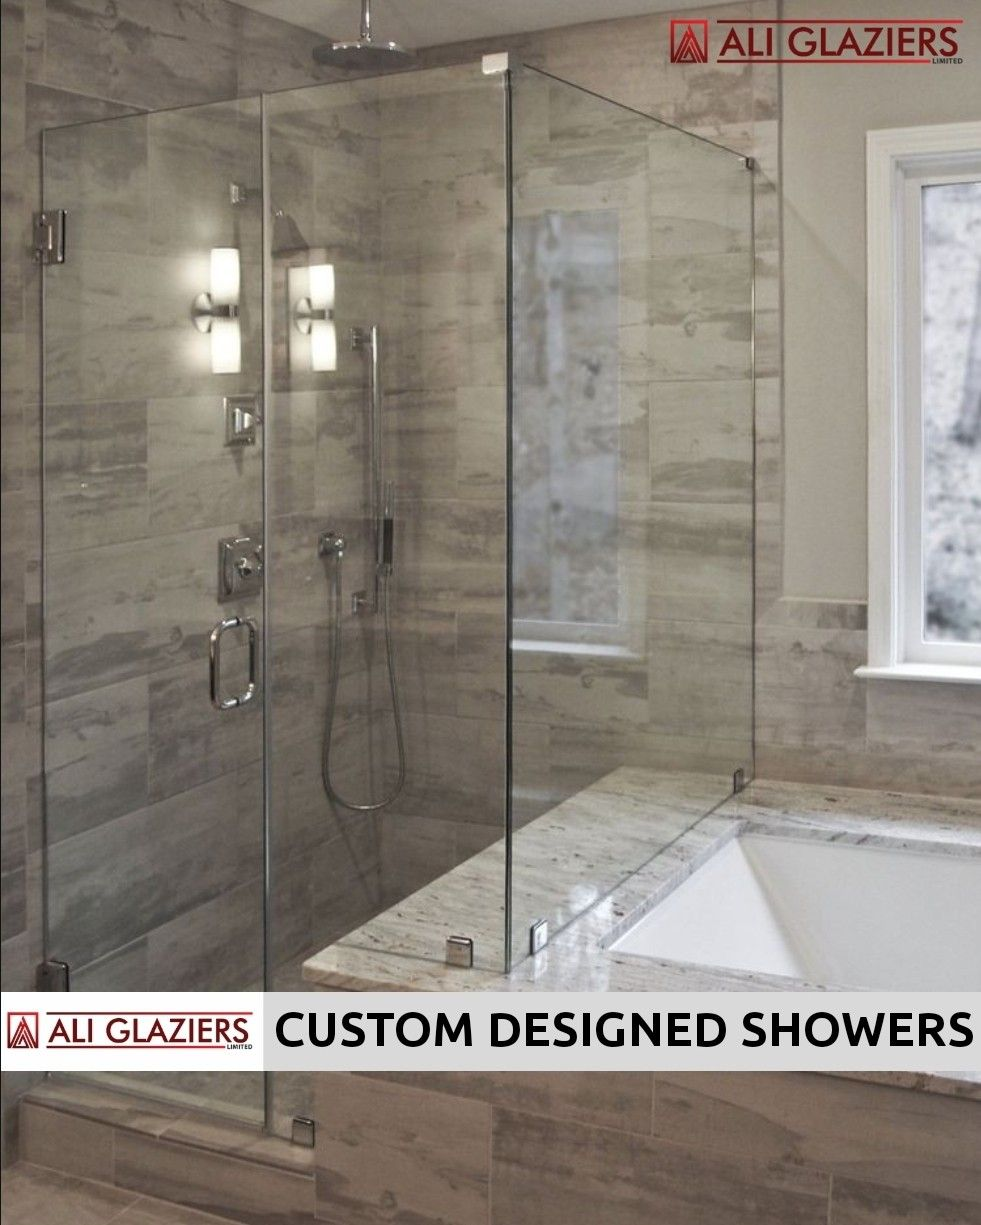 Custom Made Shower Enclosures In 2020 Shower Cubicles Shower Enclosure Small Bathroom